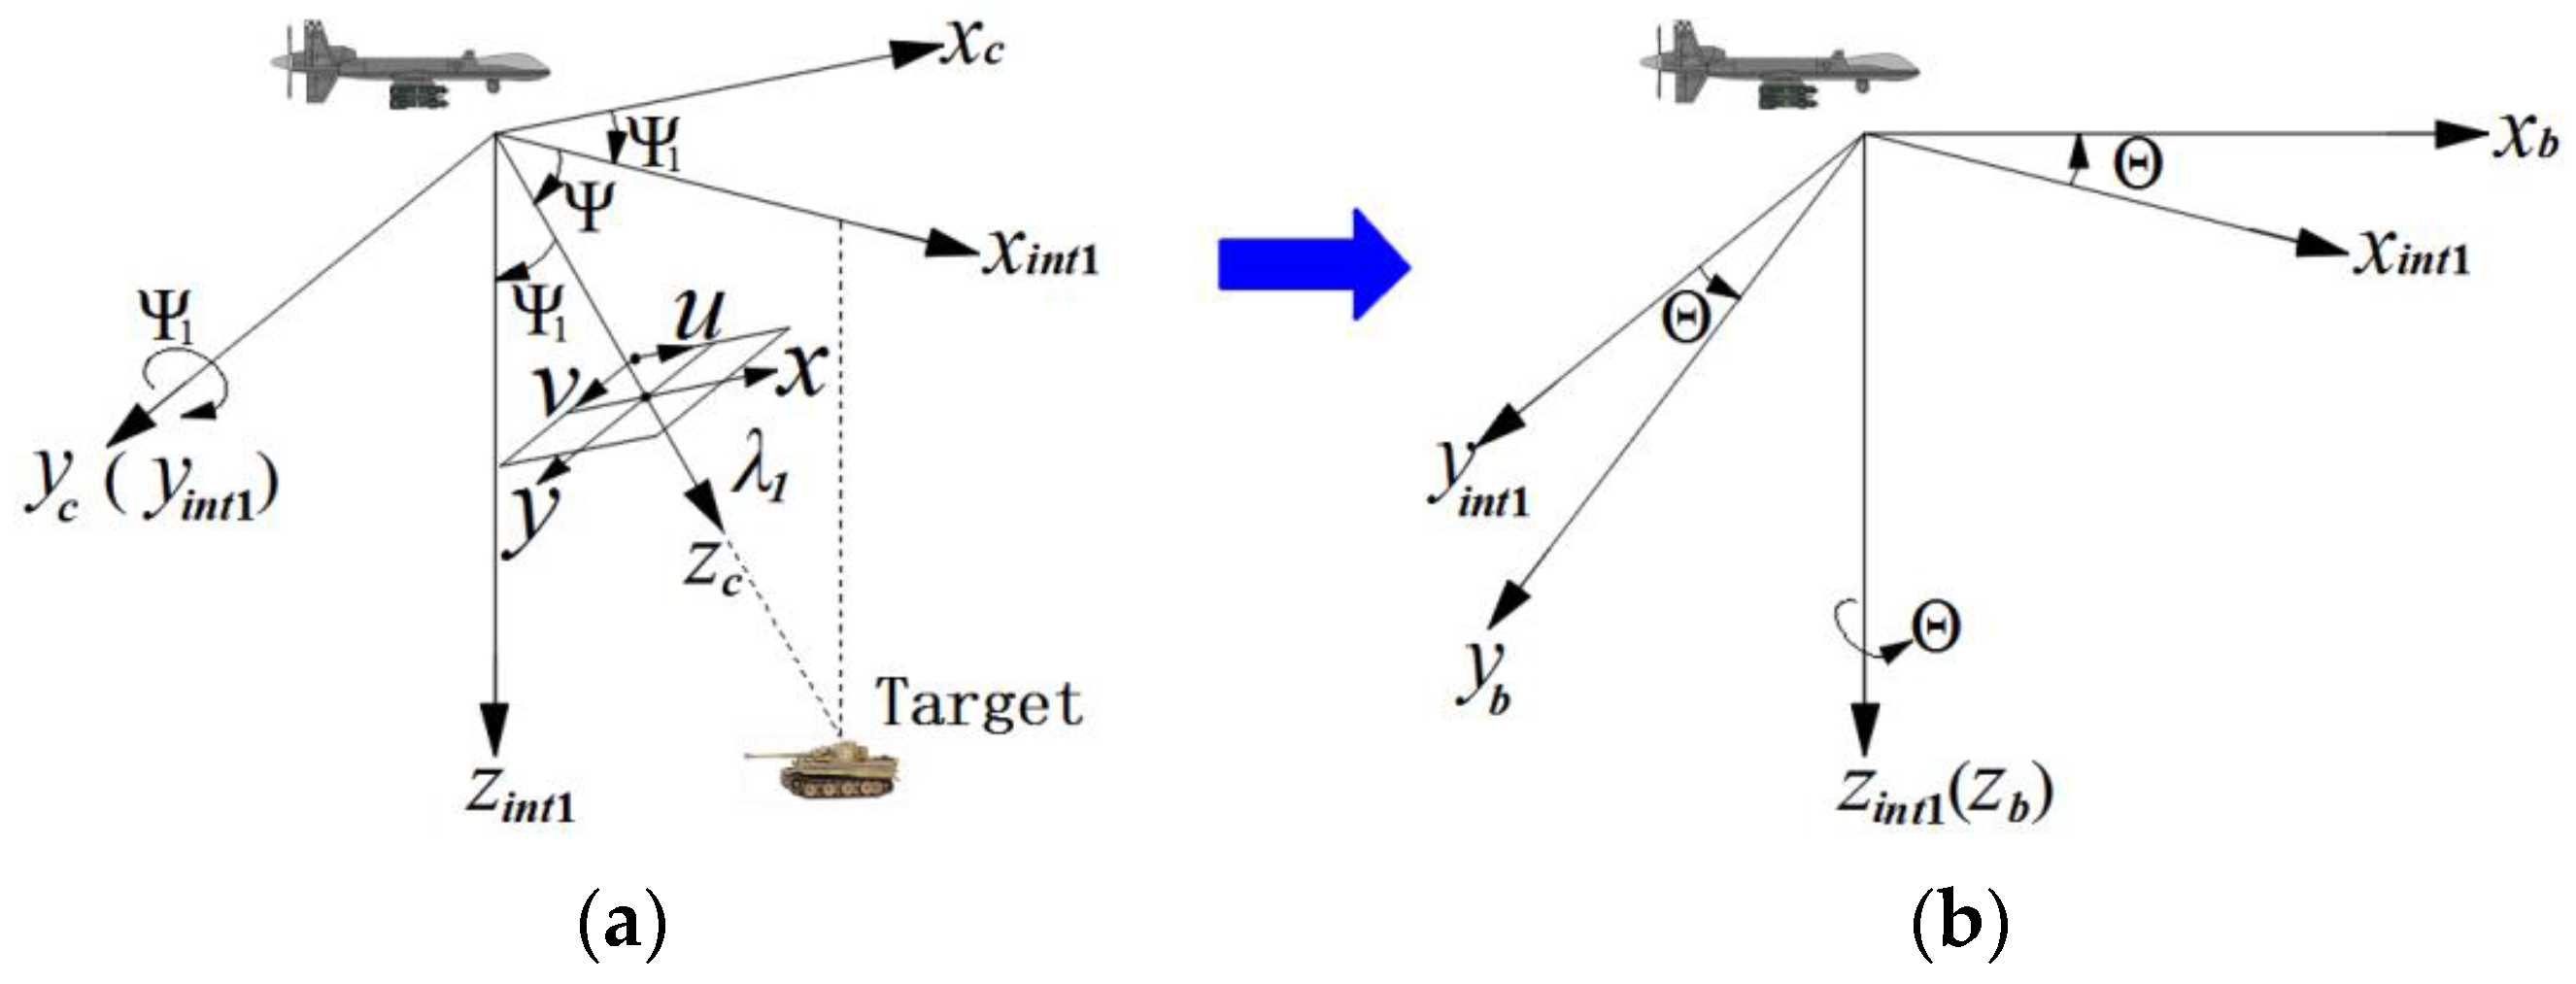 Sensors | Free Full-Text | Real-Time Multi-Target Localization from ...